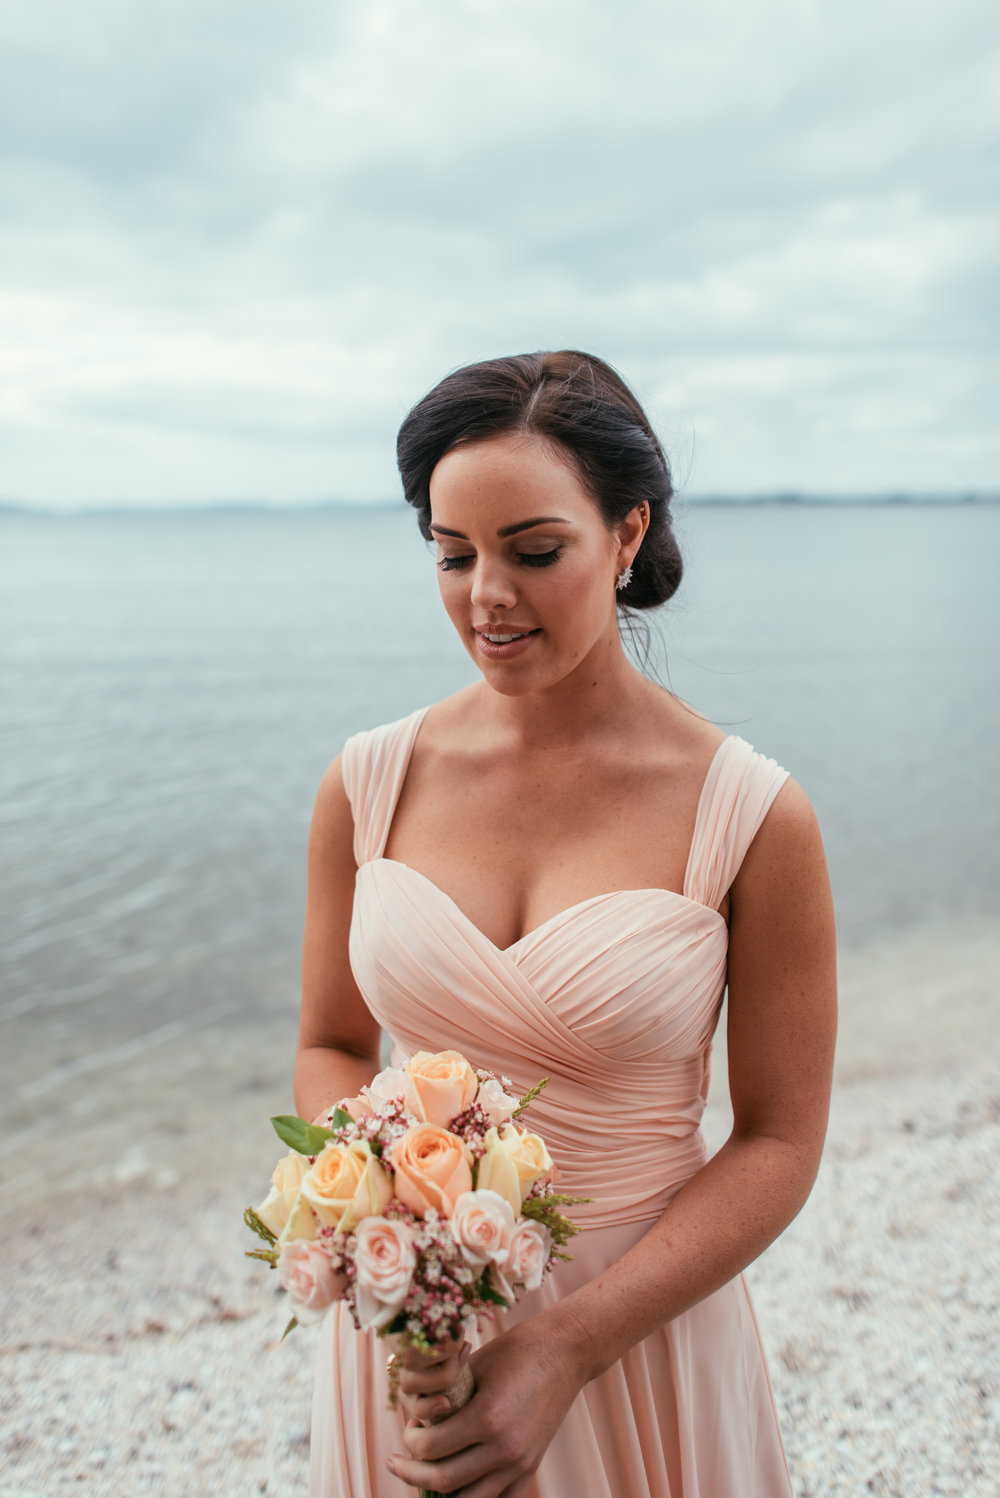 Bridesmaids $100 - Treat the bride-tribe to a 45-60 minute Bridesmaid makeover. All products used are long-wearing and trusted brands that I love to use.